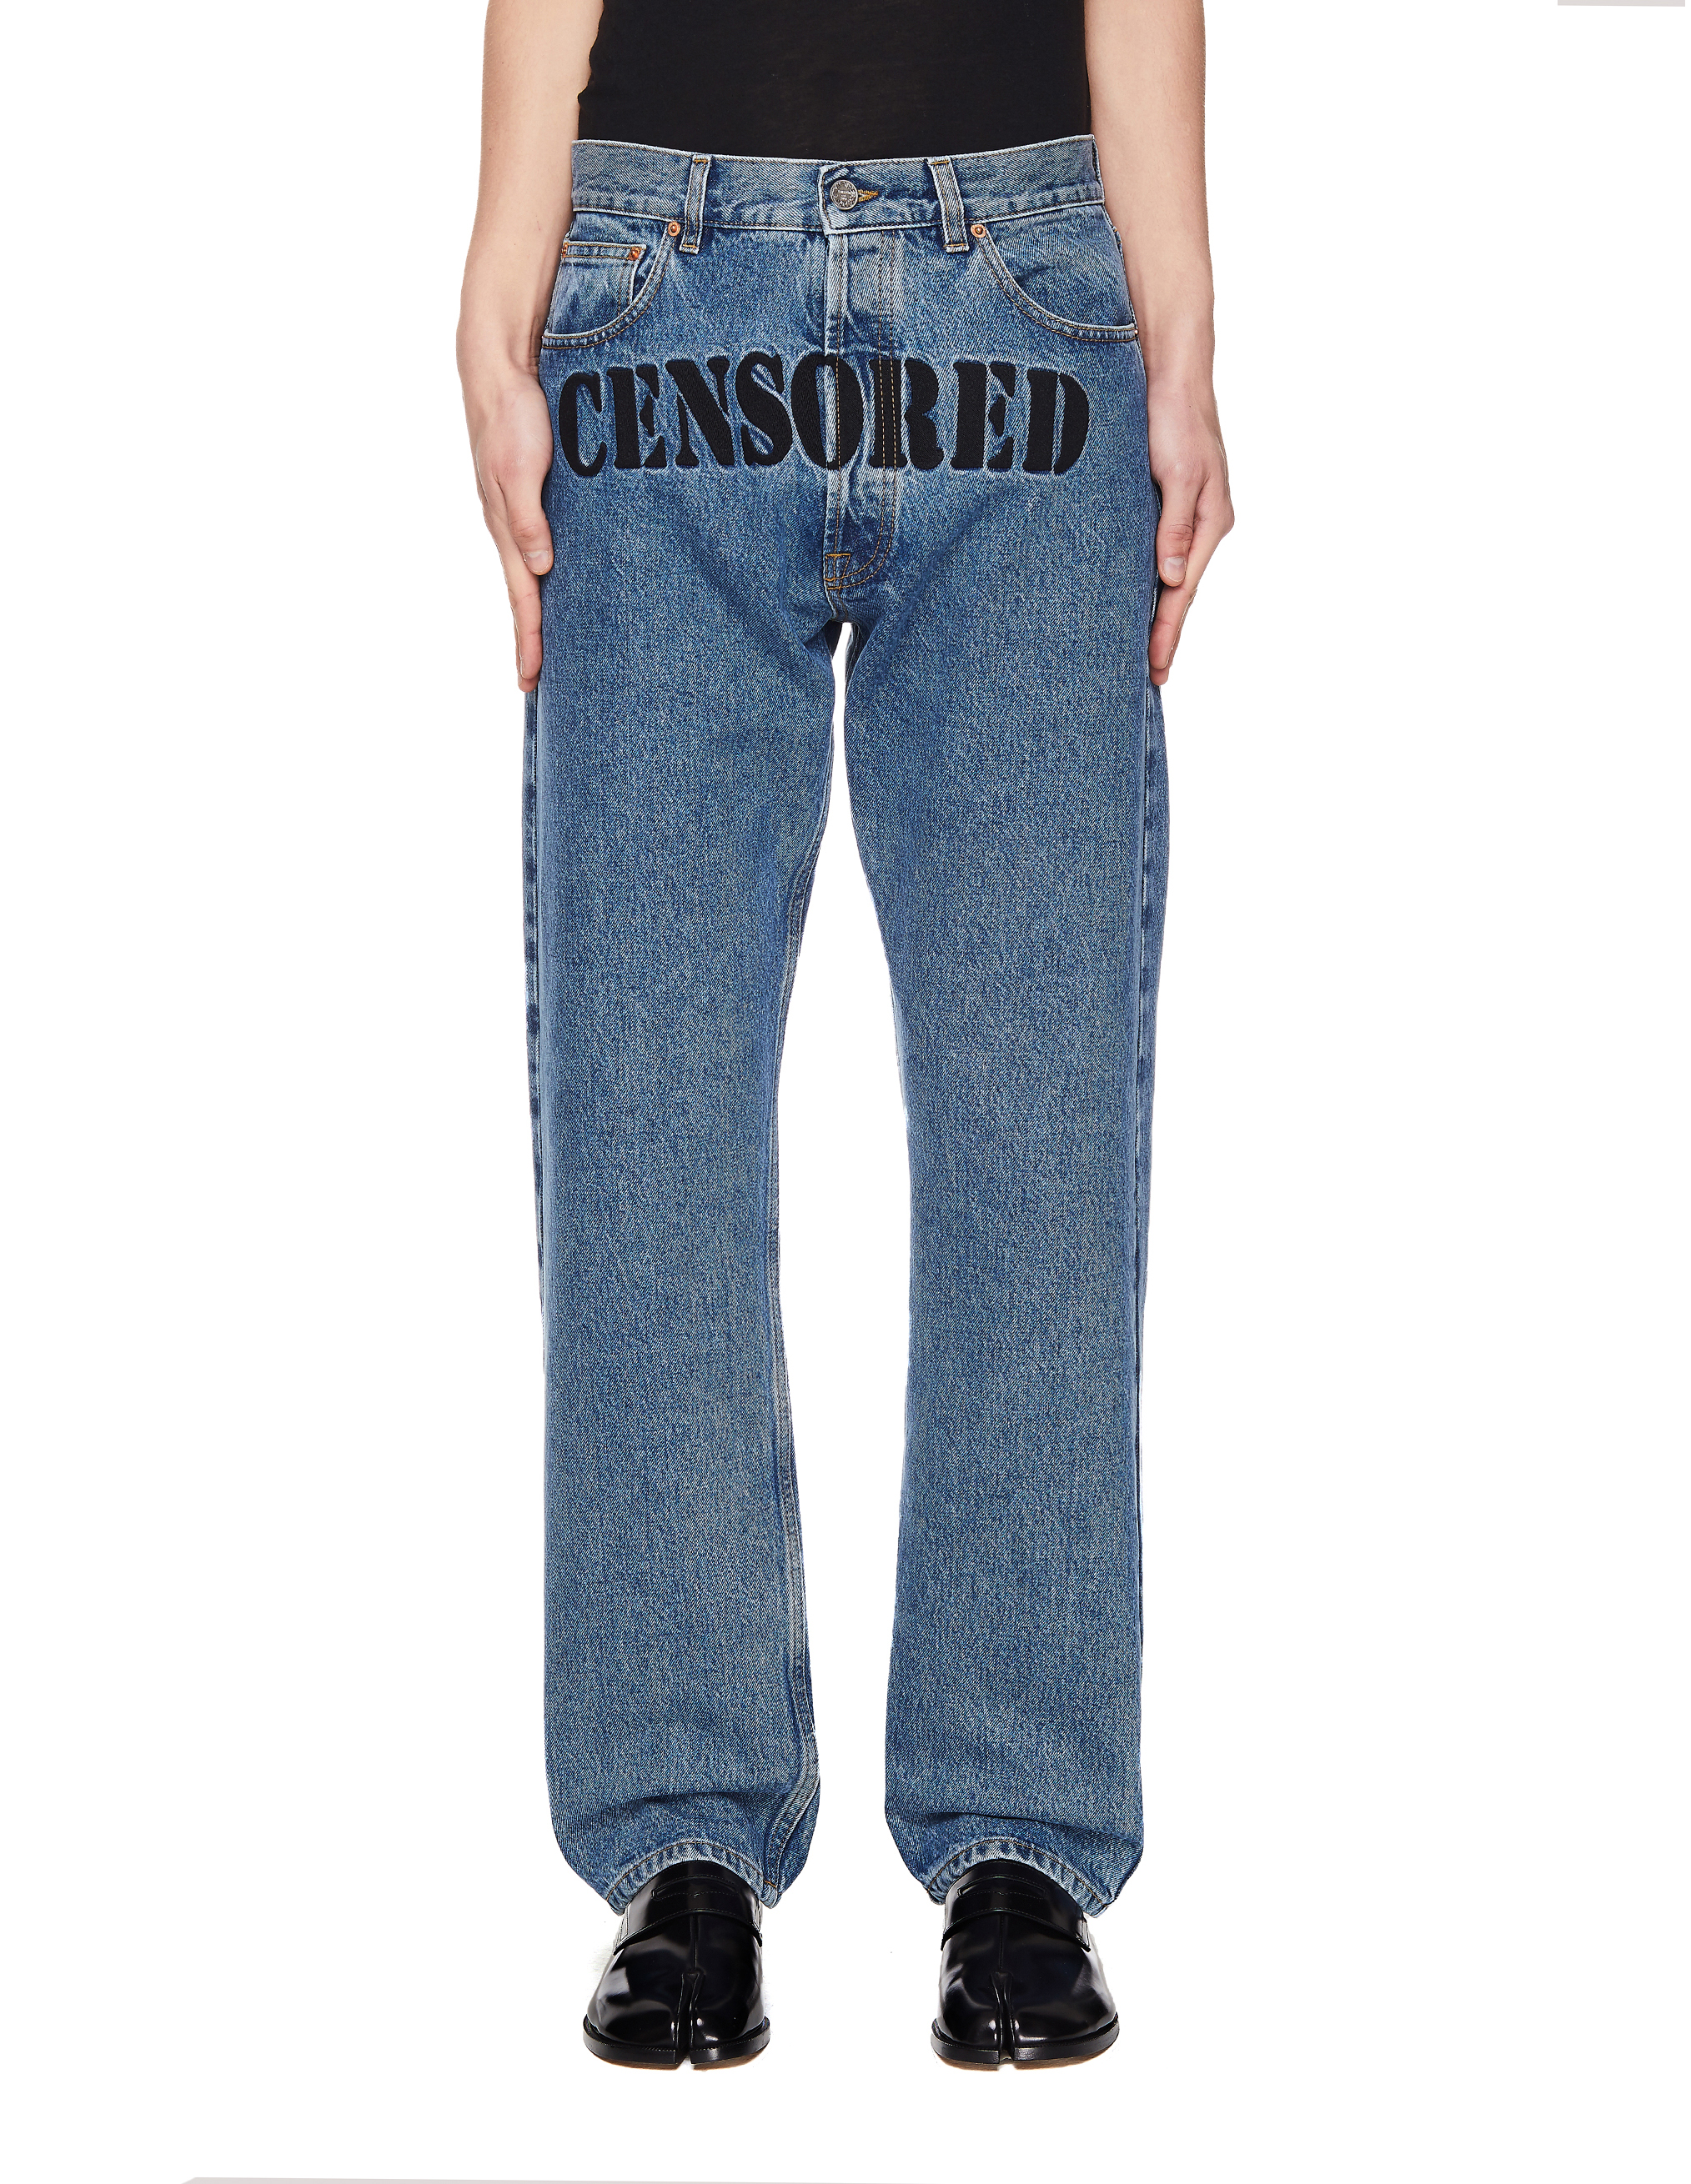 Vetements Embroidered Censored Jeans